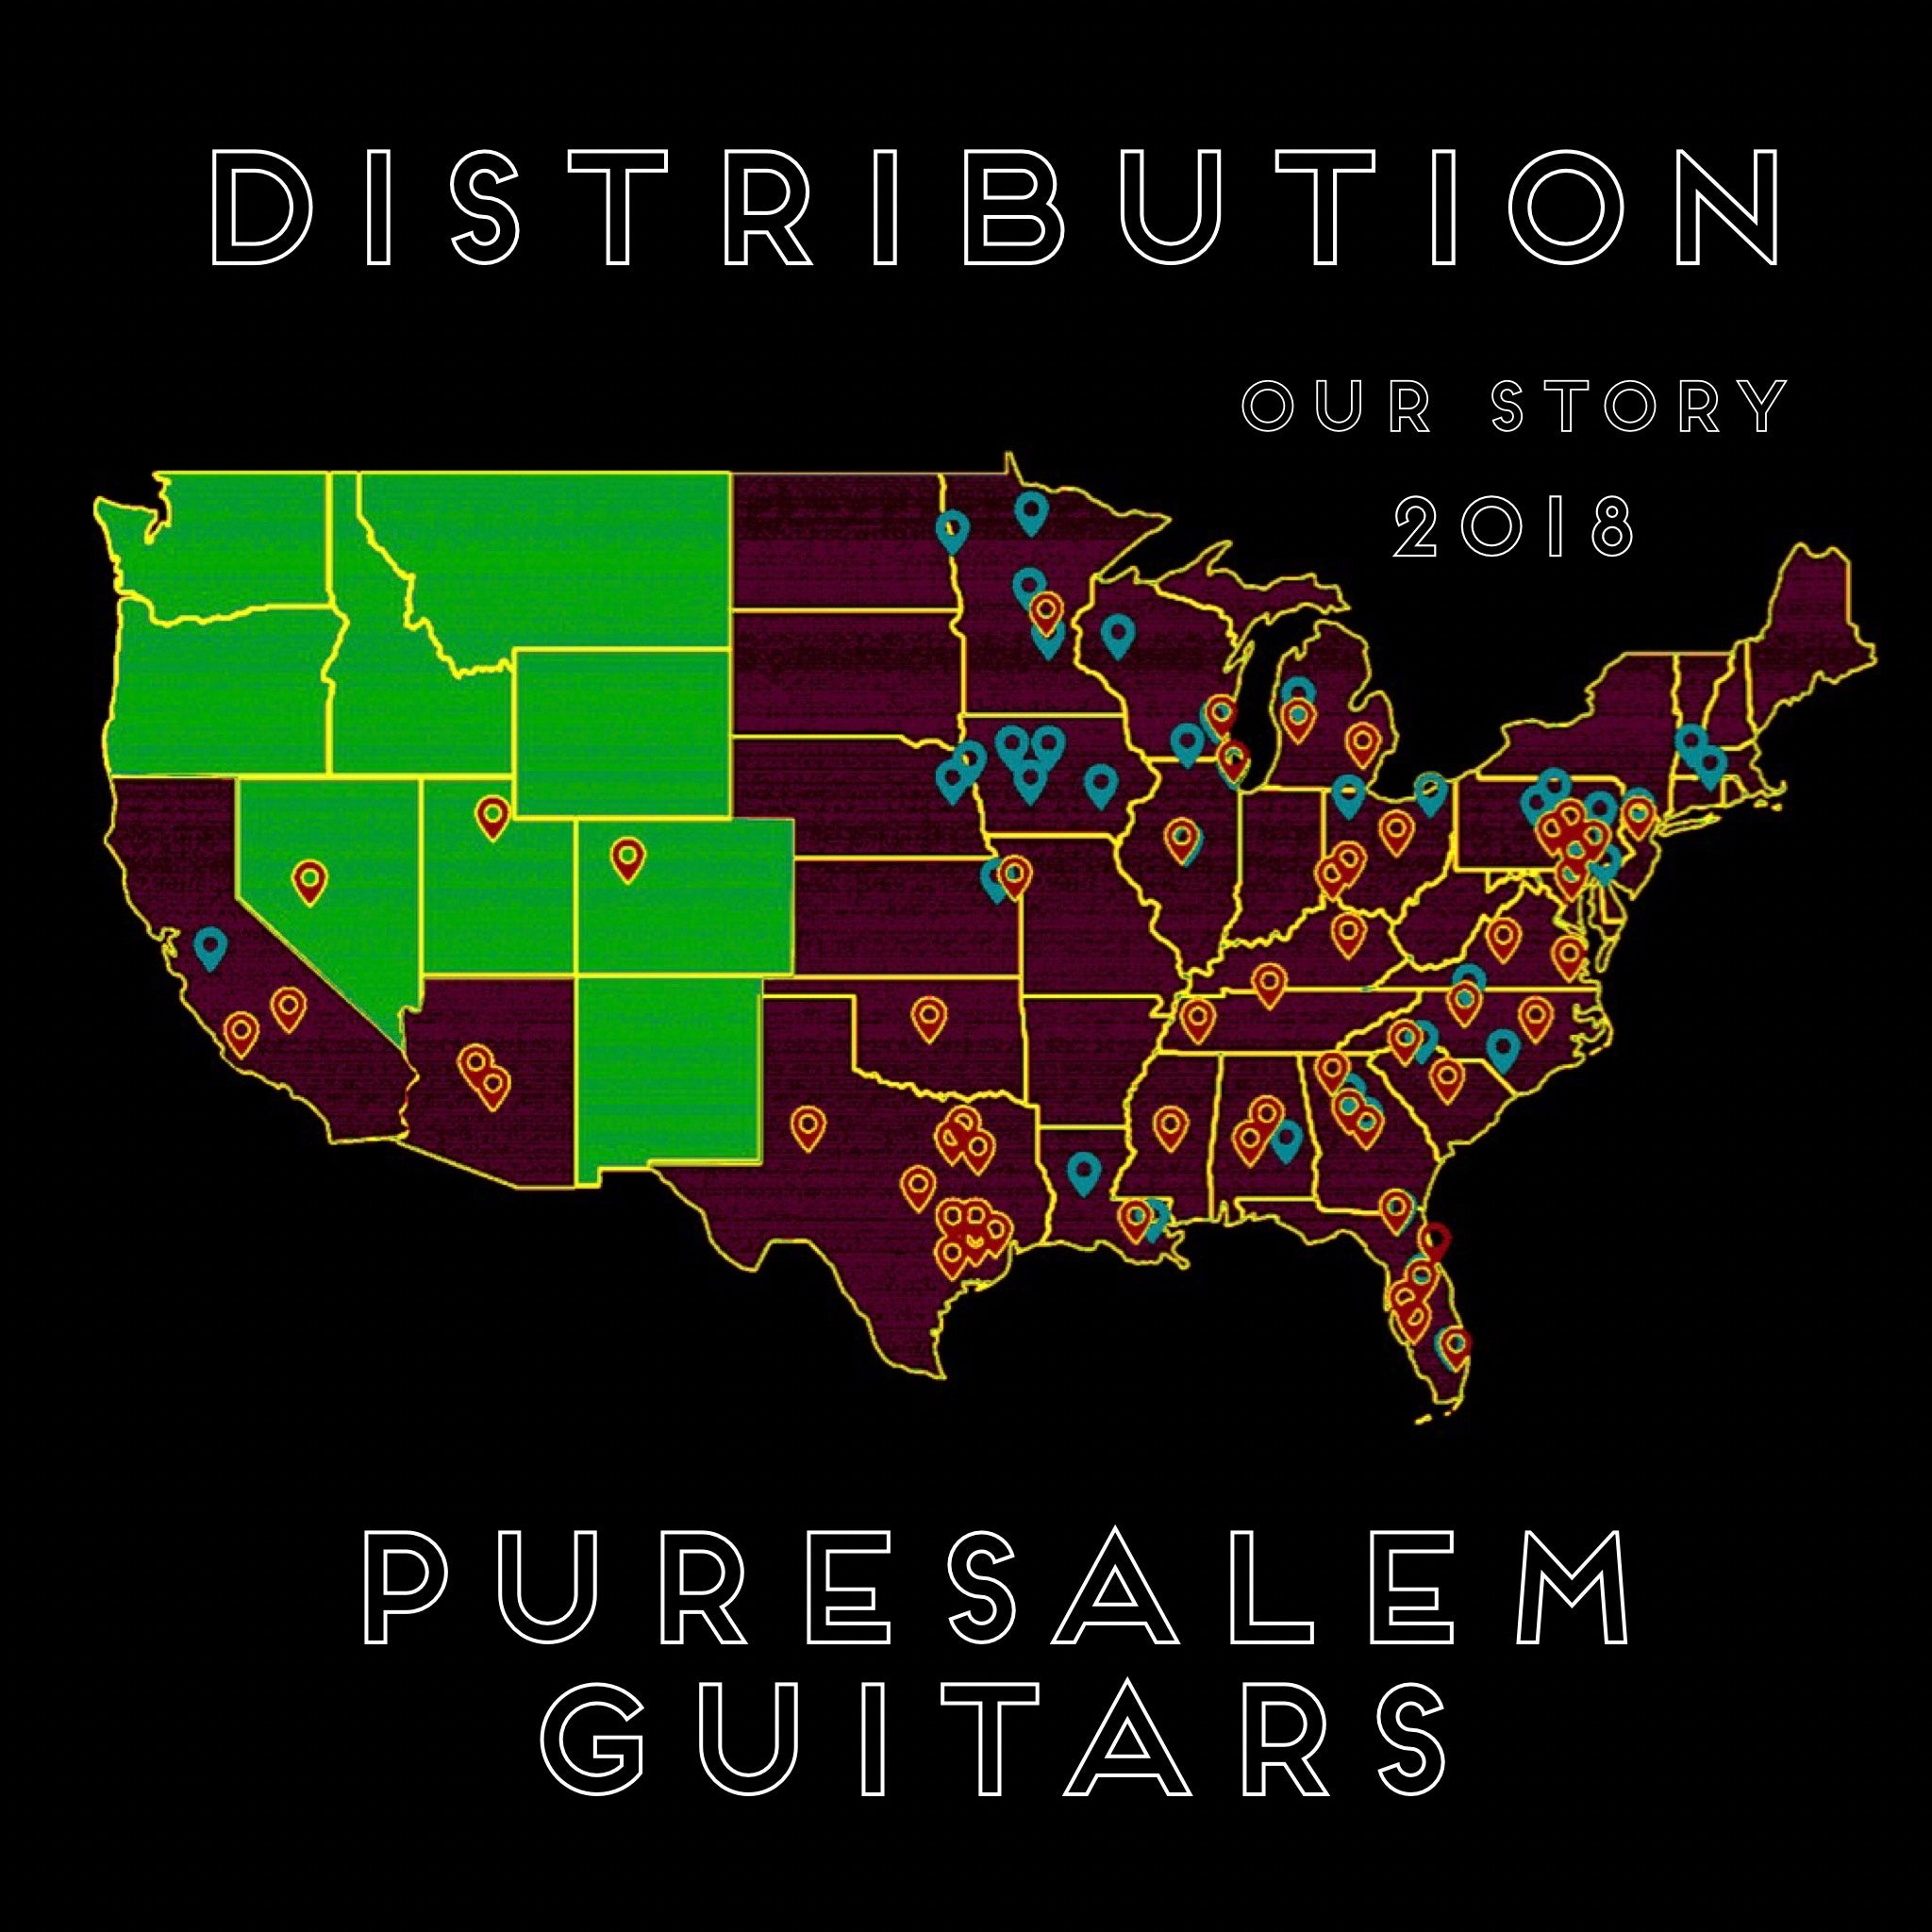 PureSalem Guitars Distribution Ma